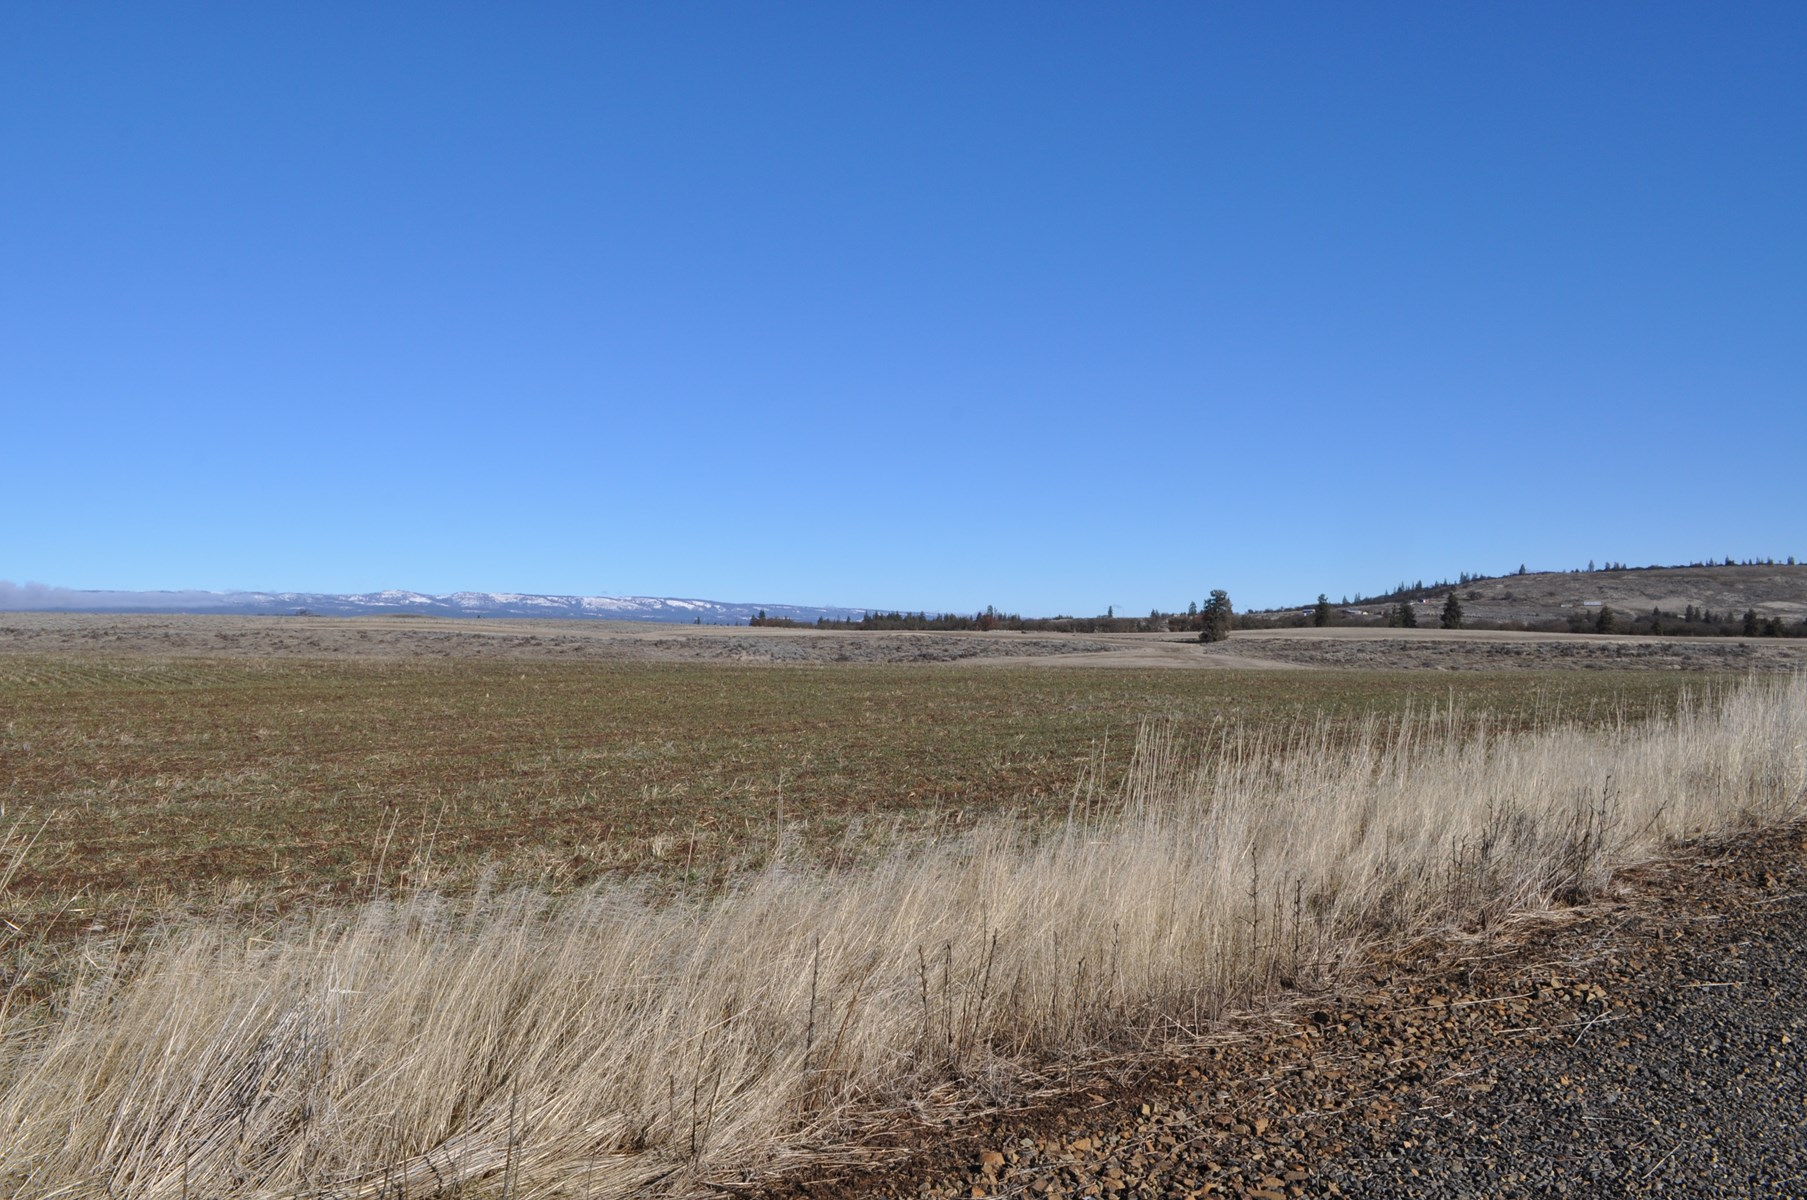 Land for sale in Goldendale Washington, near Hood River OR